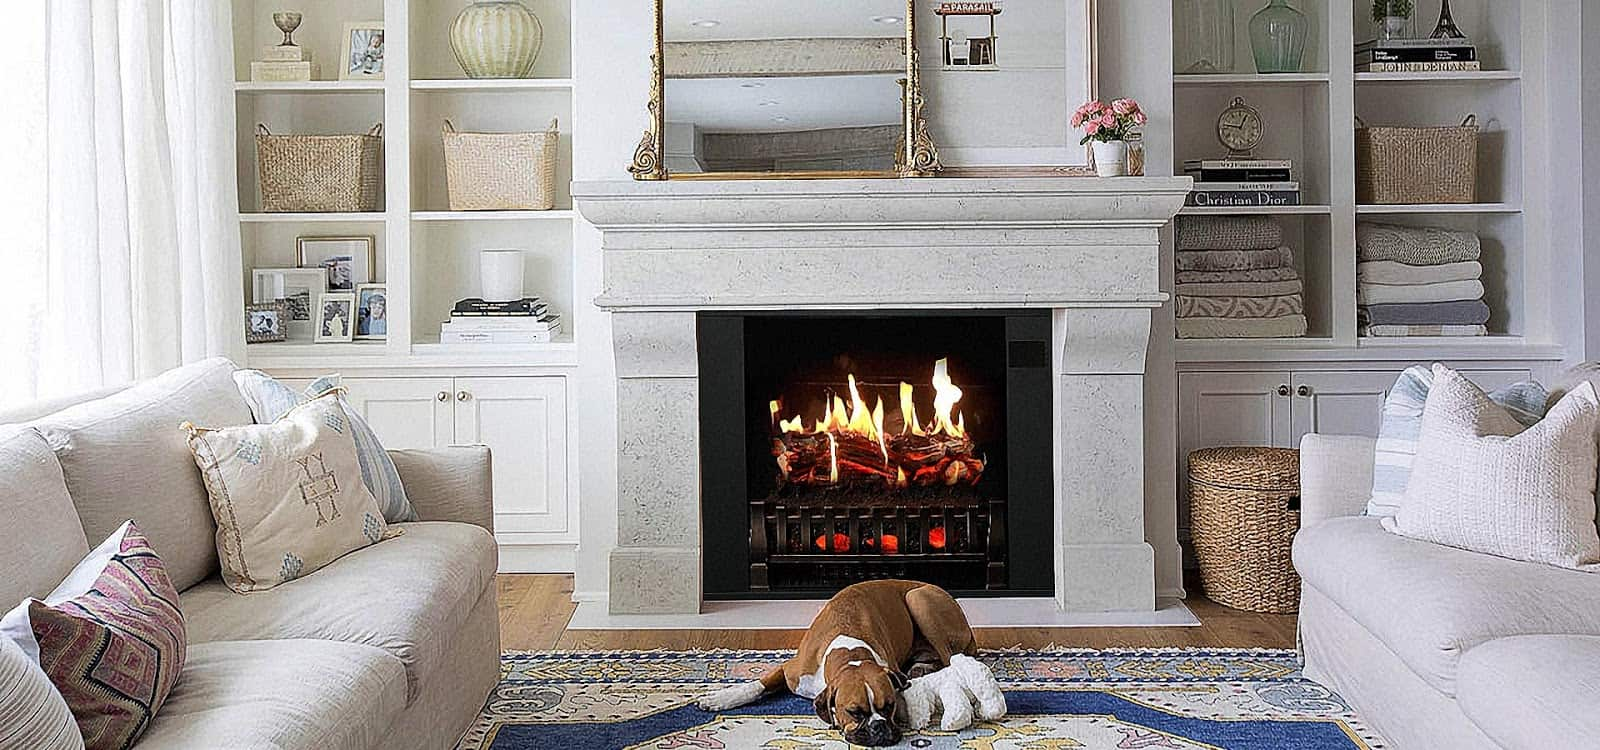 how to operate fireplace